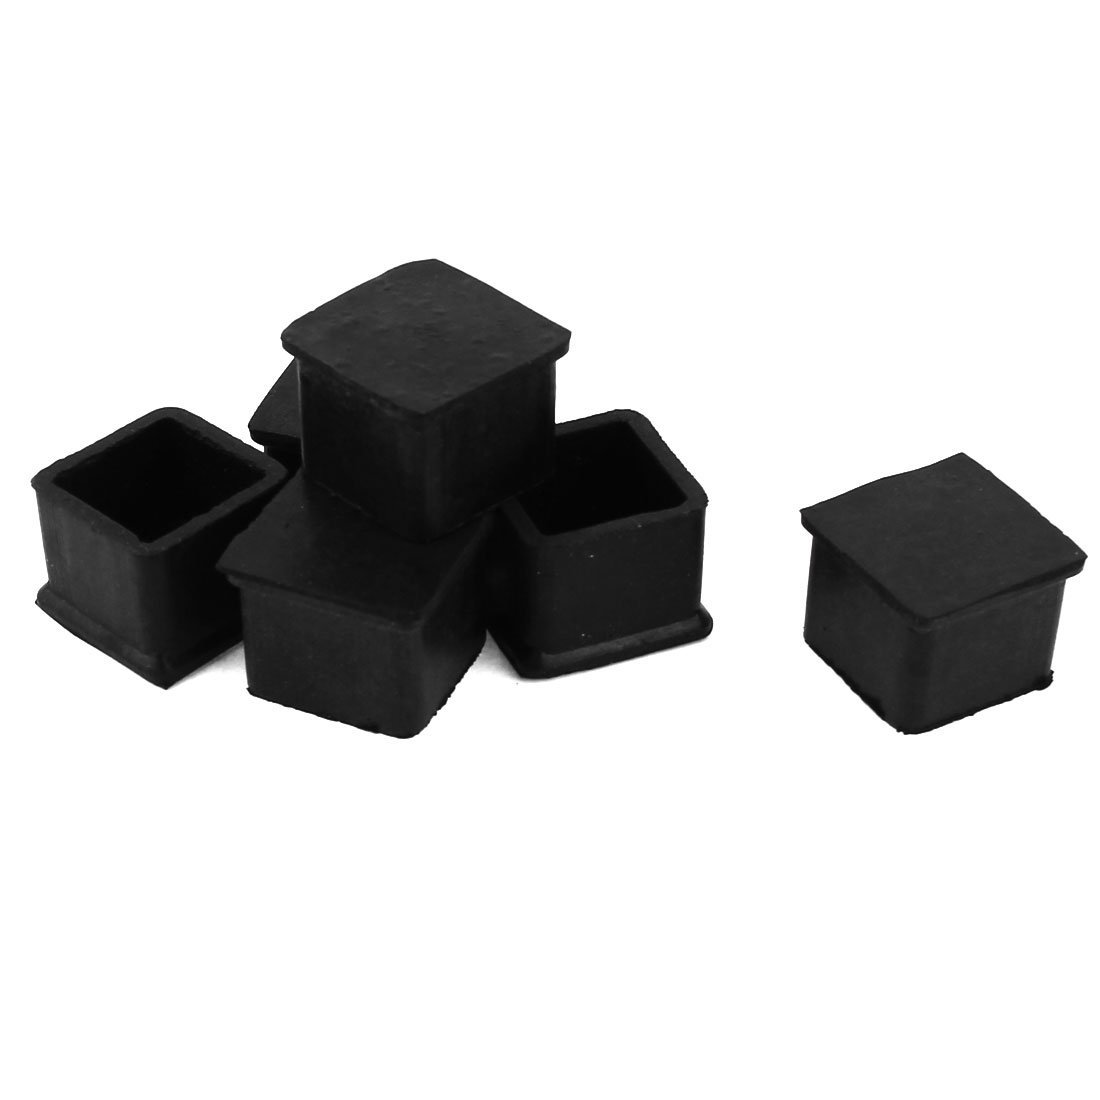 Hot Sale Rubber end caps furniture foot / floor protector, 25 mm x 25 mm, 6 pieces демпфирующий материал 1500 mm x 1000 mm x 25 mm 300 г м